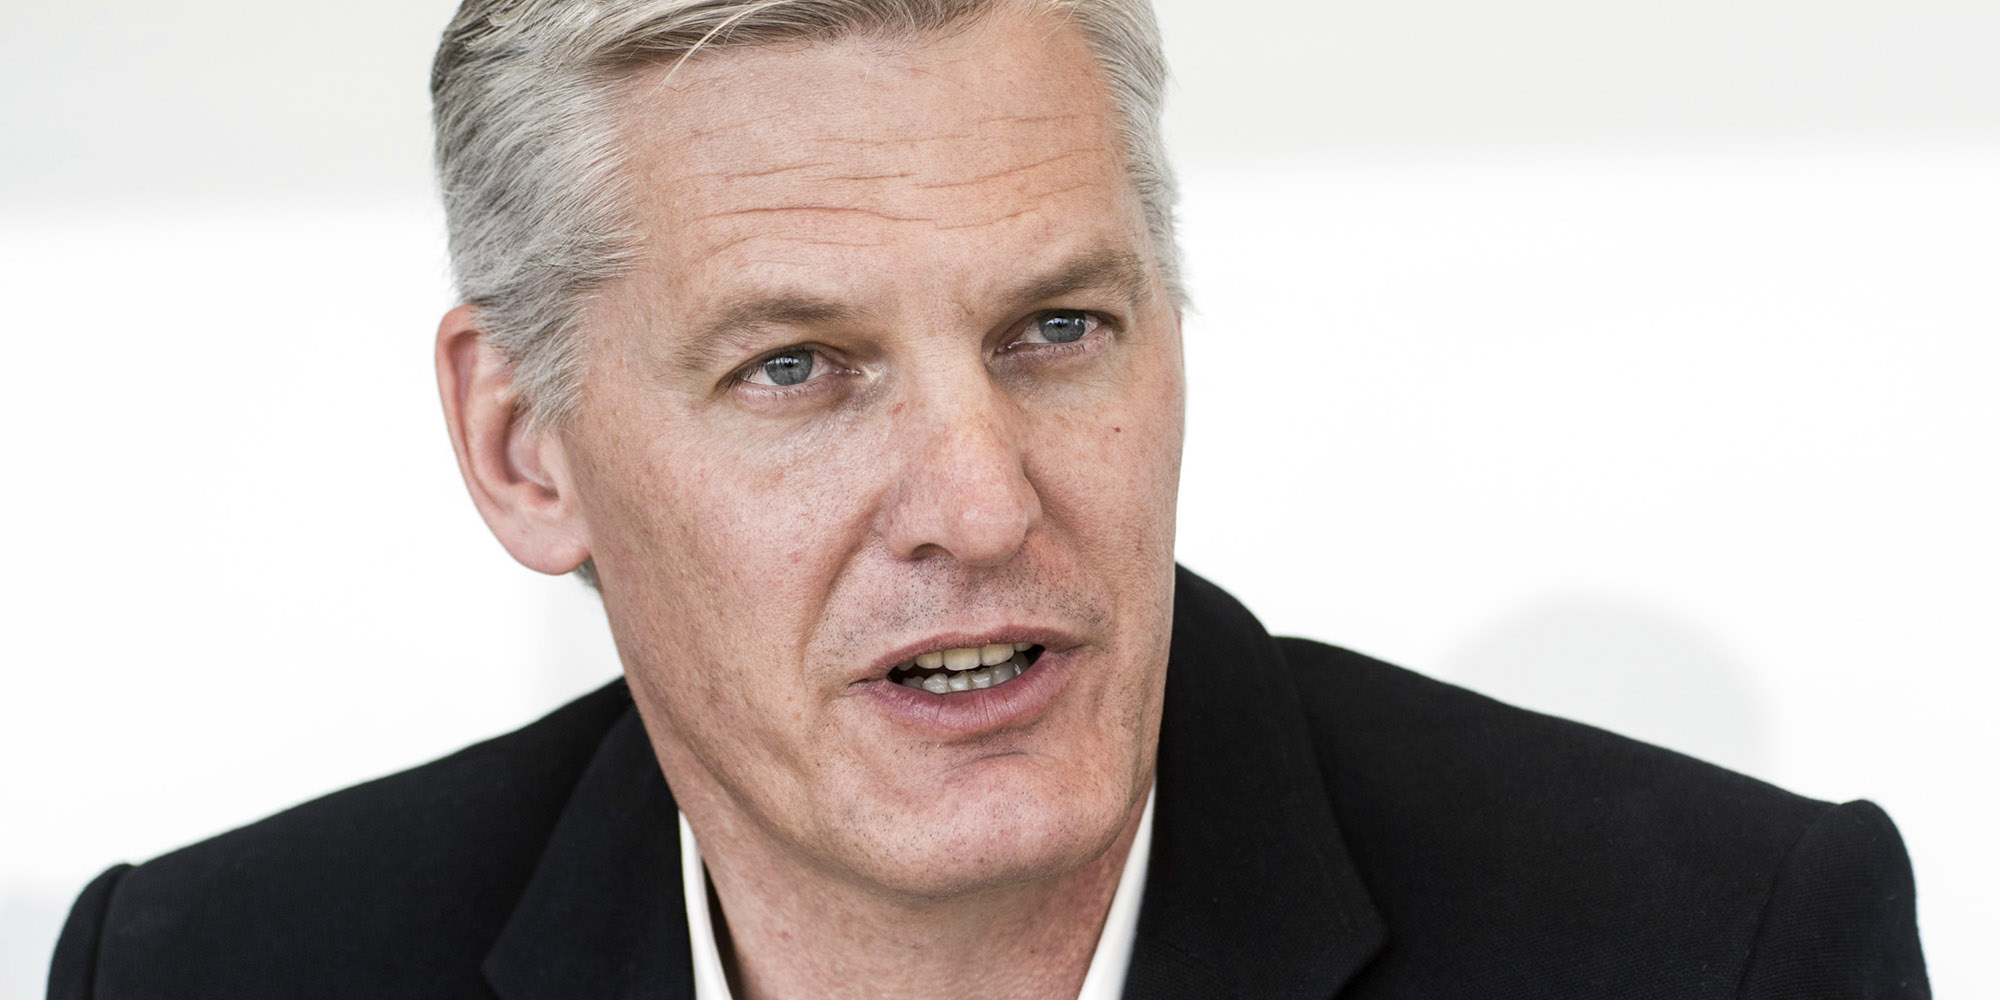 Questions arise after new Eskom CEO is named